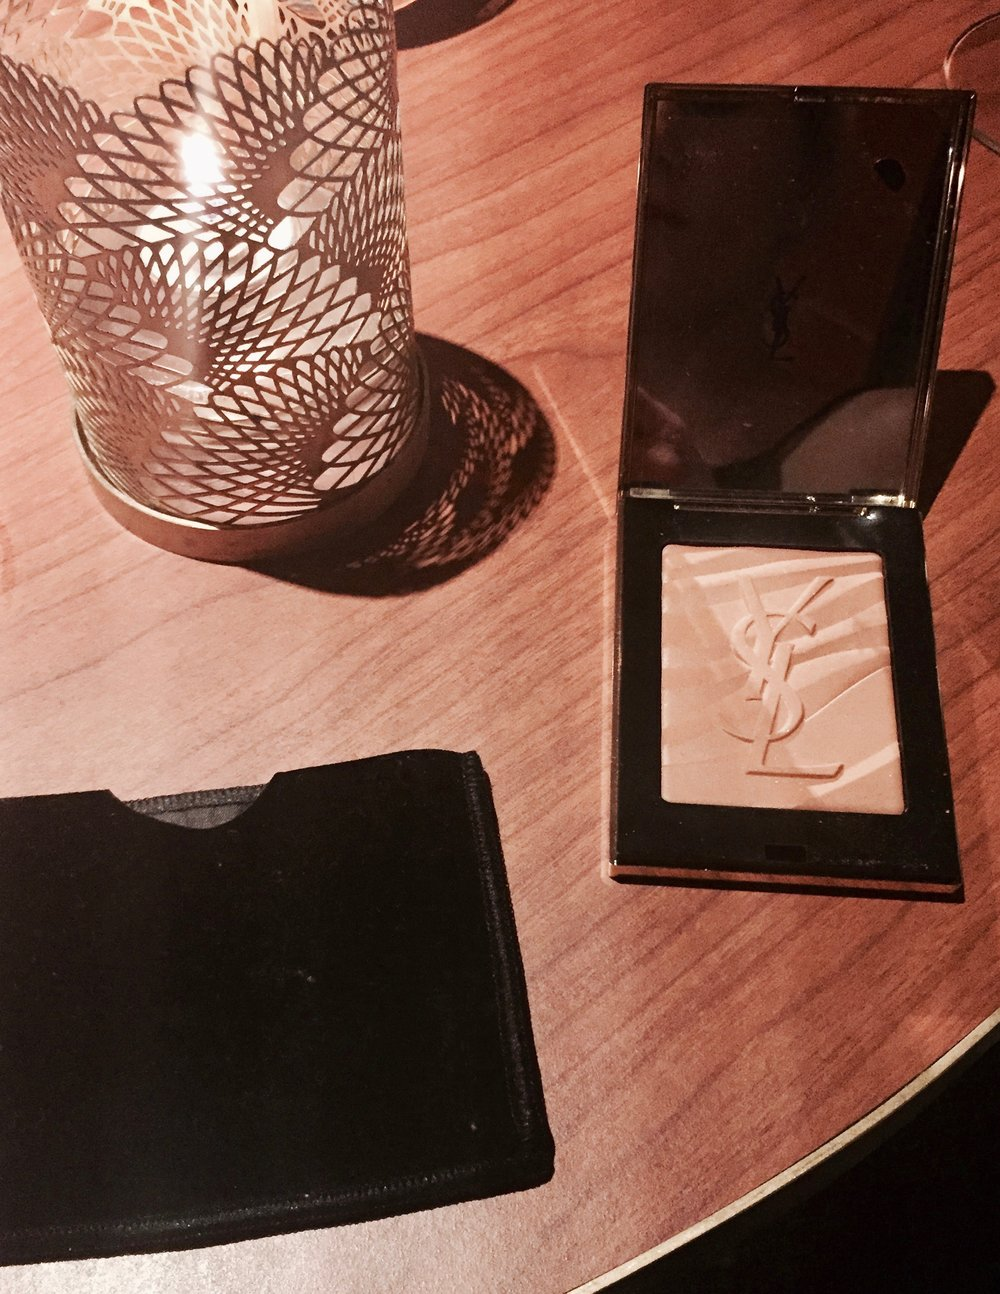 Yves Saint Laurent, Les Sahariennes Bronzing Stones.  I really love the box and the cover case that it comes with too.